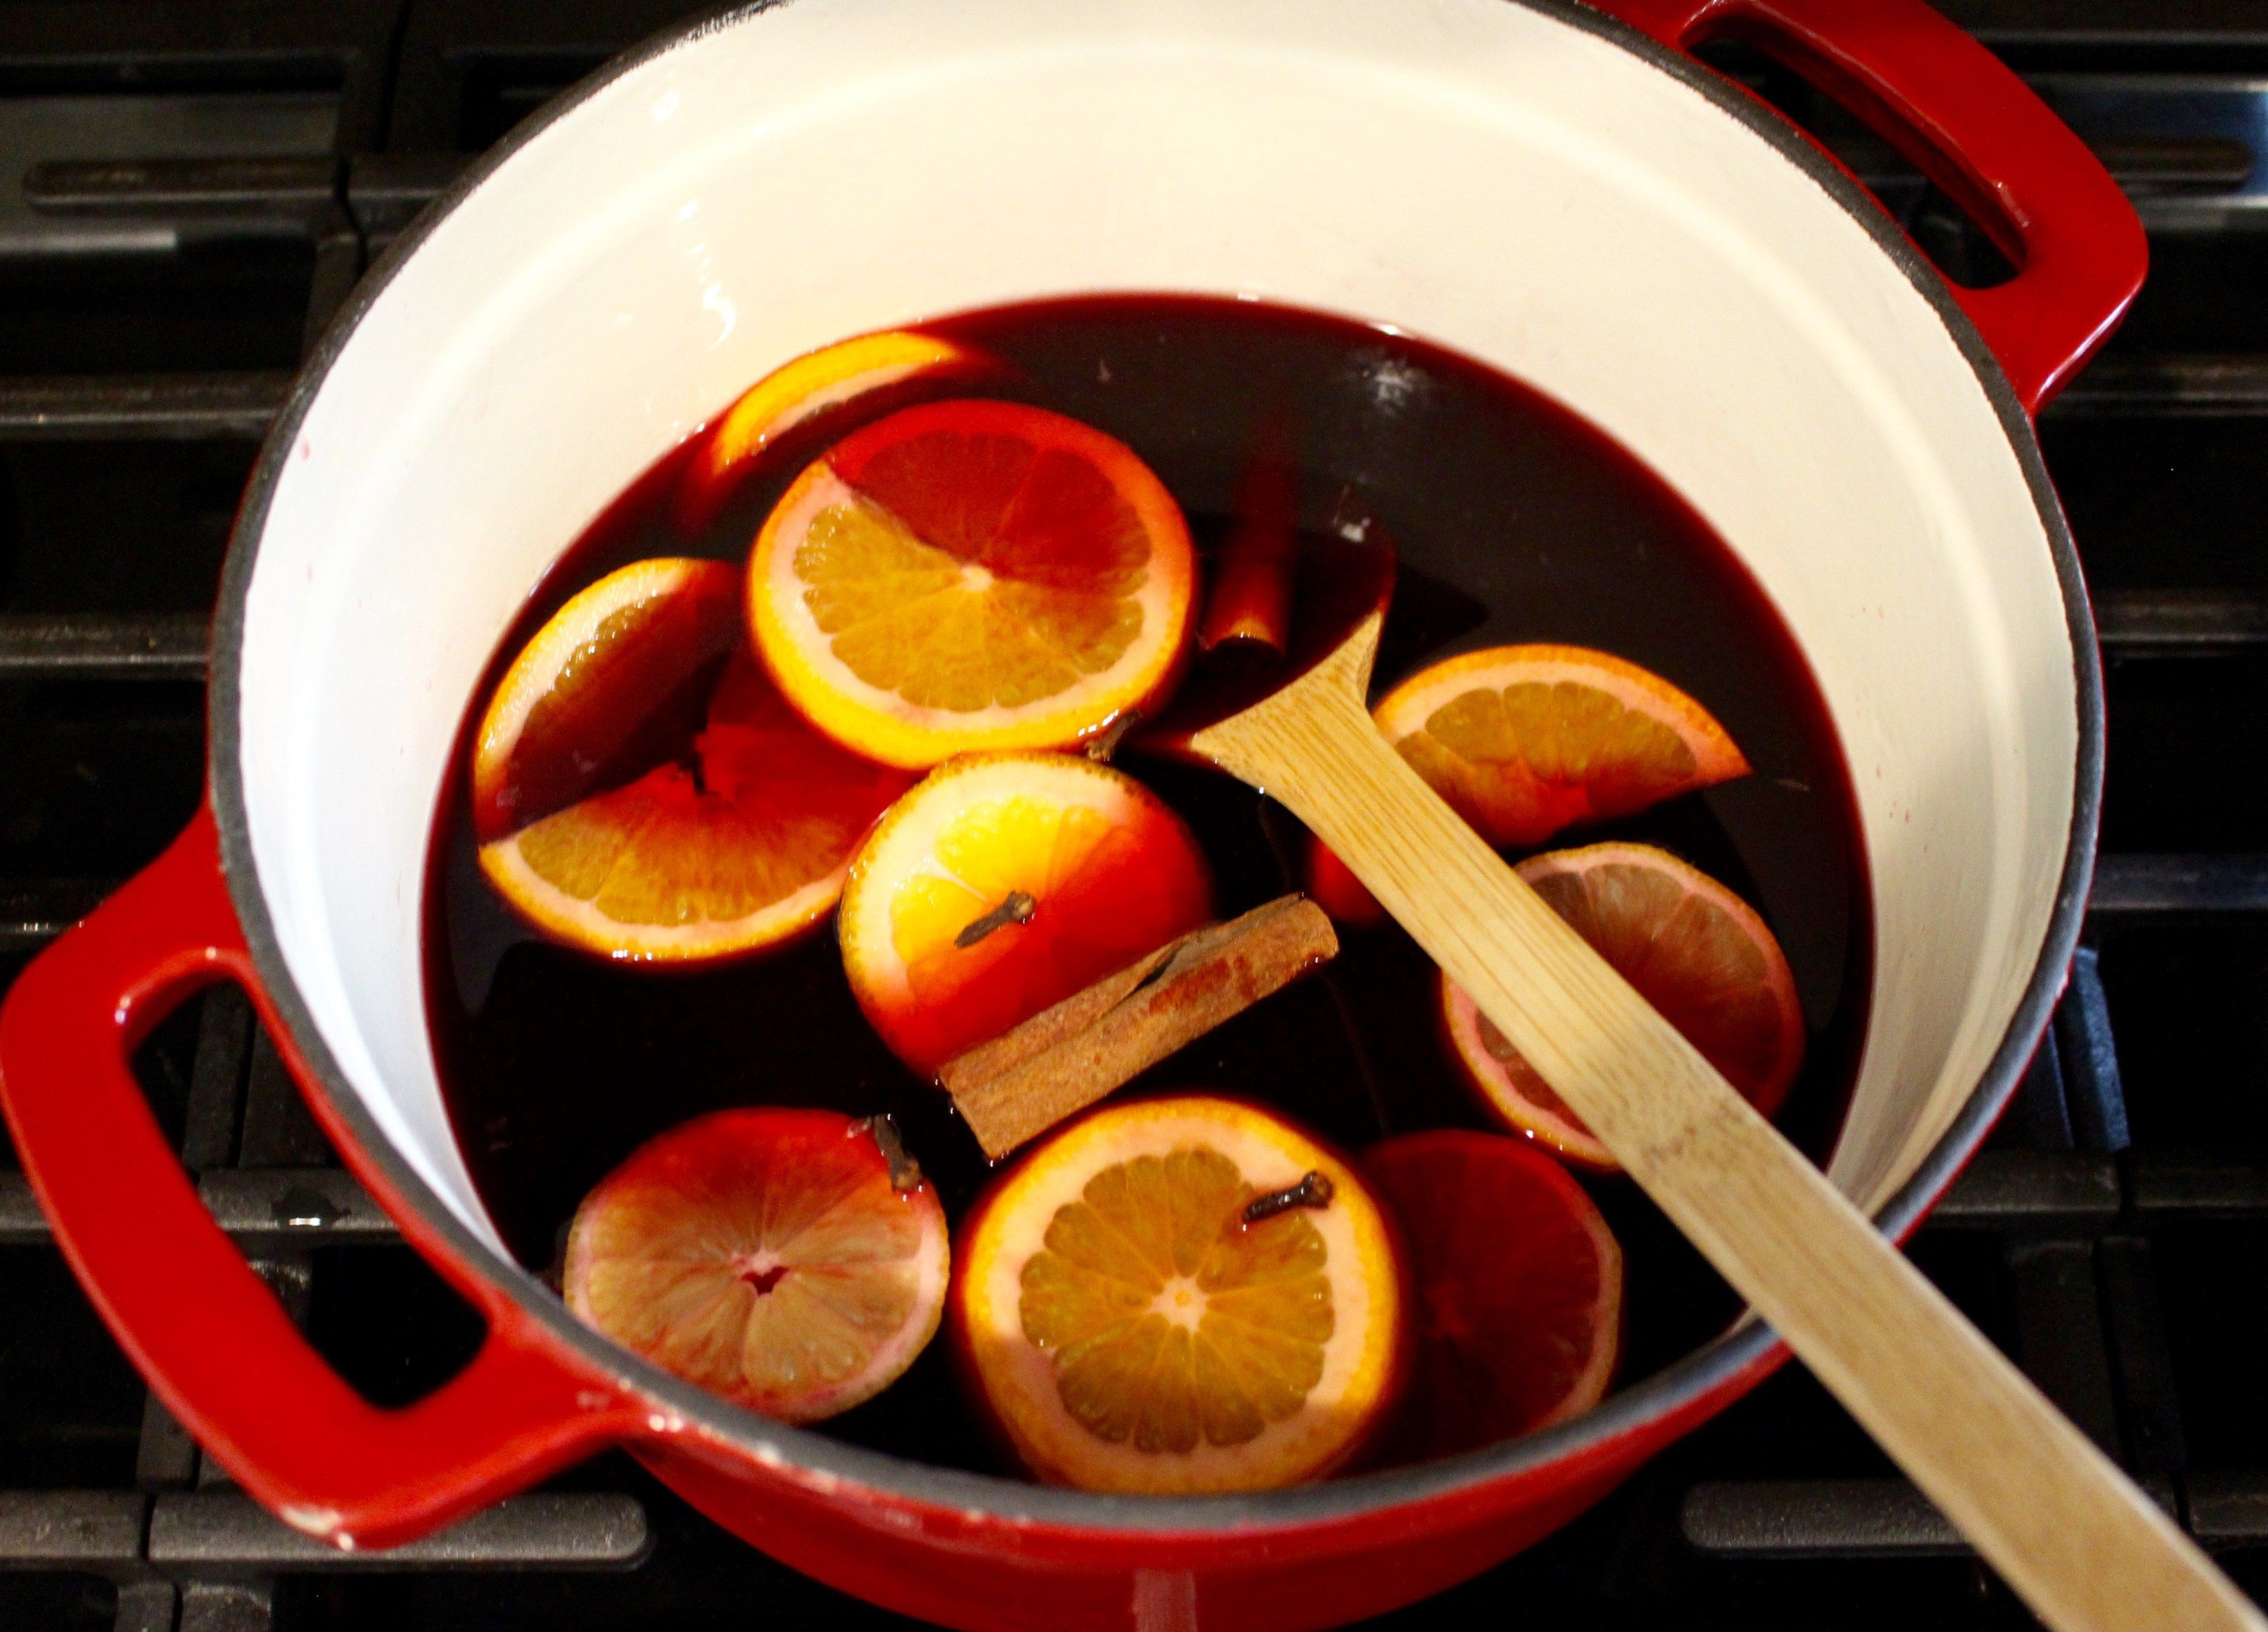 Gluhwein Is A Traditional Holiday Drink In Germany That Just Tastes Like Christmas Basically It S Red Wine Christmas Drinks Recipes Wine Recipes Mulled Wine